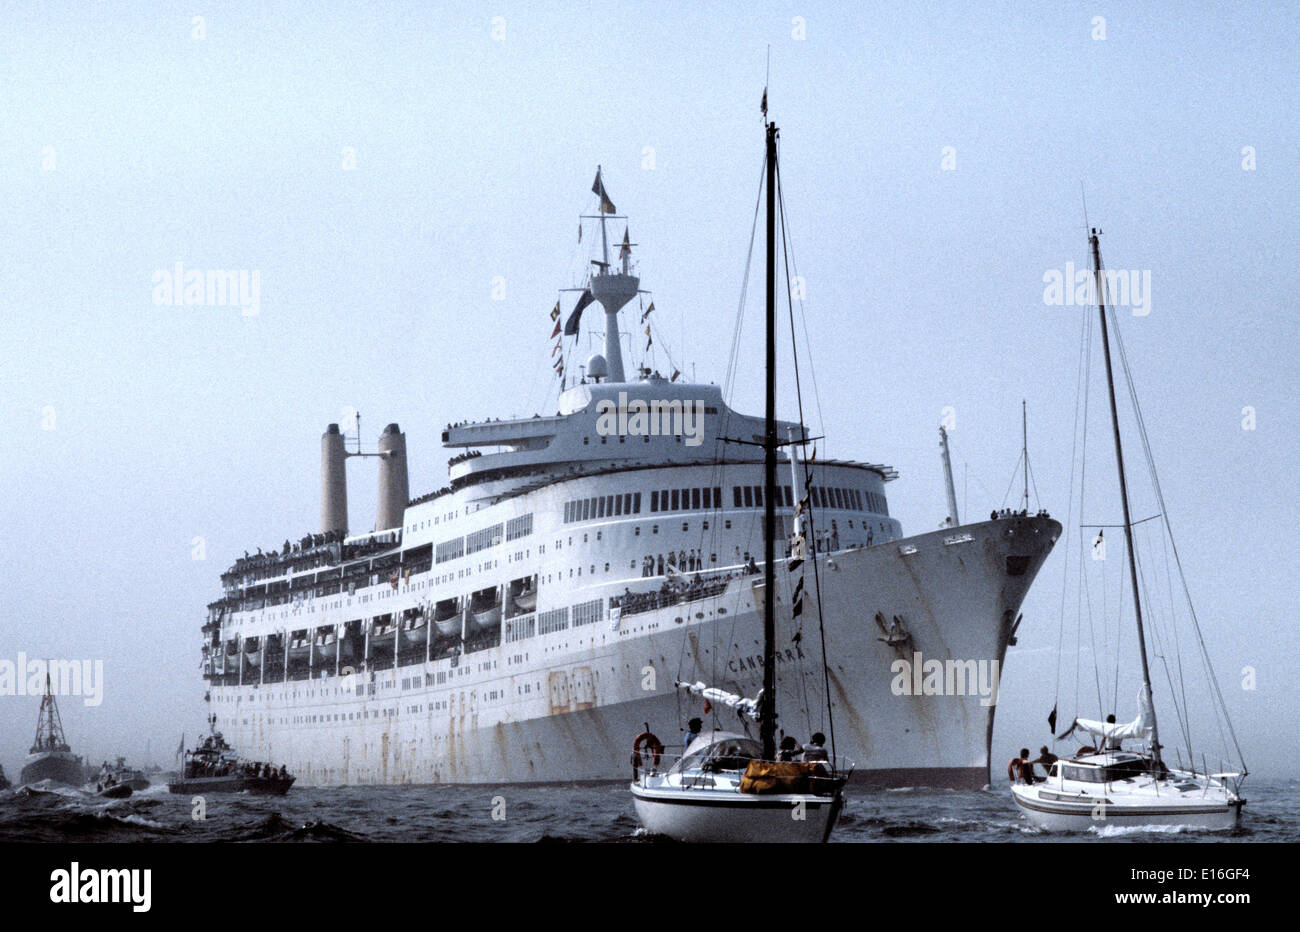 1982. SOUTHAMPTON, ENGLAND.- S.S.CANBERRA, ACQUISITIONED BY THE MOD TO SERVE AS A TROOPSHIP DURING THE FALKLANDS, RETURNS HOME. - Stock Image